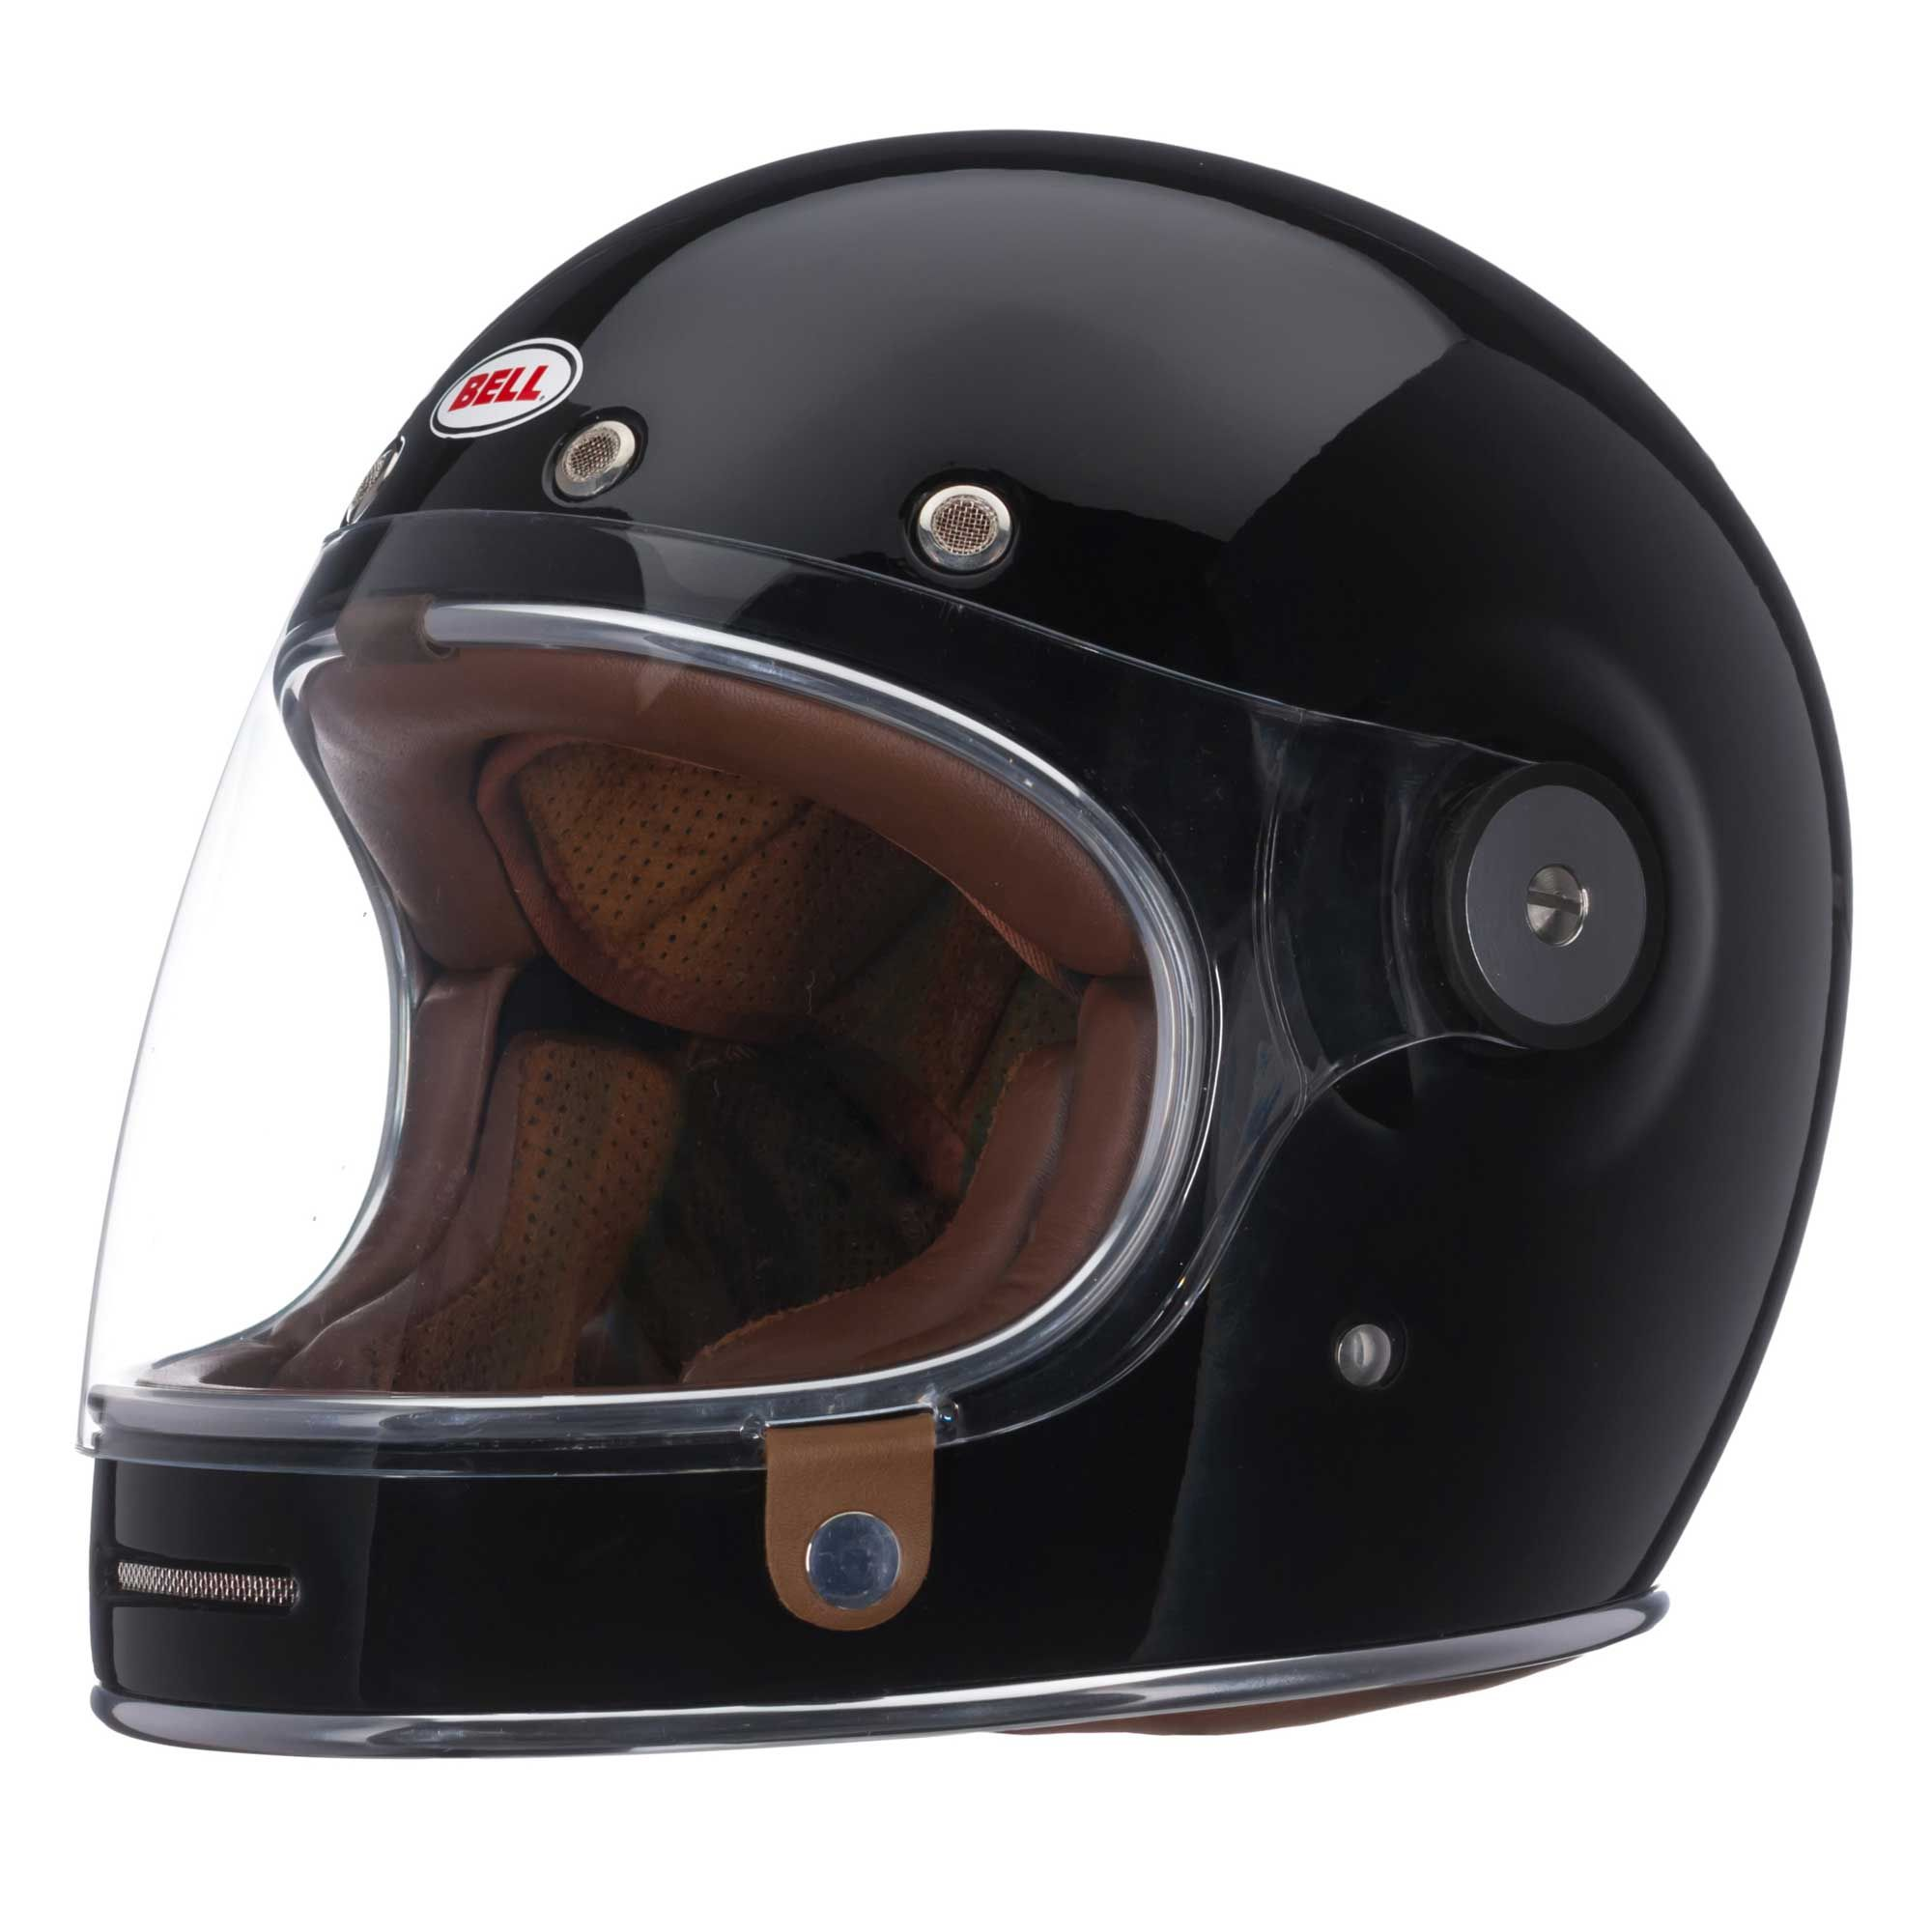 Bell custom 500 gloss black vintage low profile helmet chopper harley - Shop For Bell Bullitt Helmet Solid Black Fantastic Retro Style Full Face Ece Helmet From Bell Free Next Day Uk Delivery And Returns